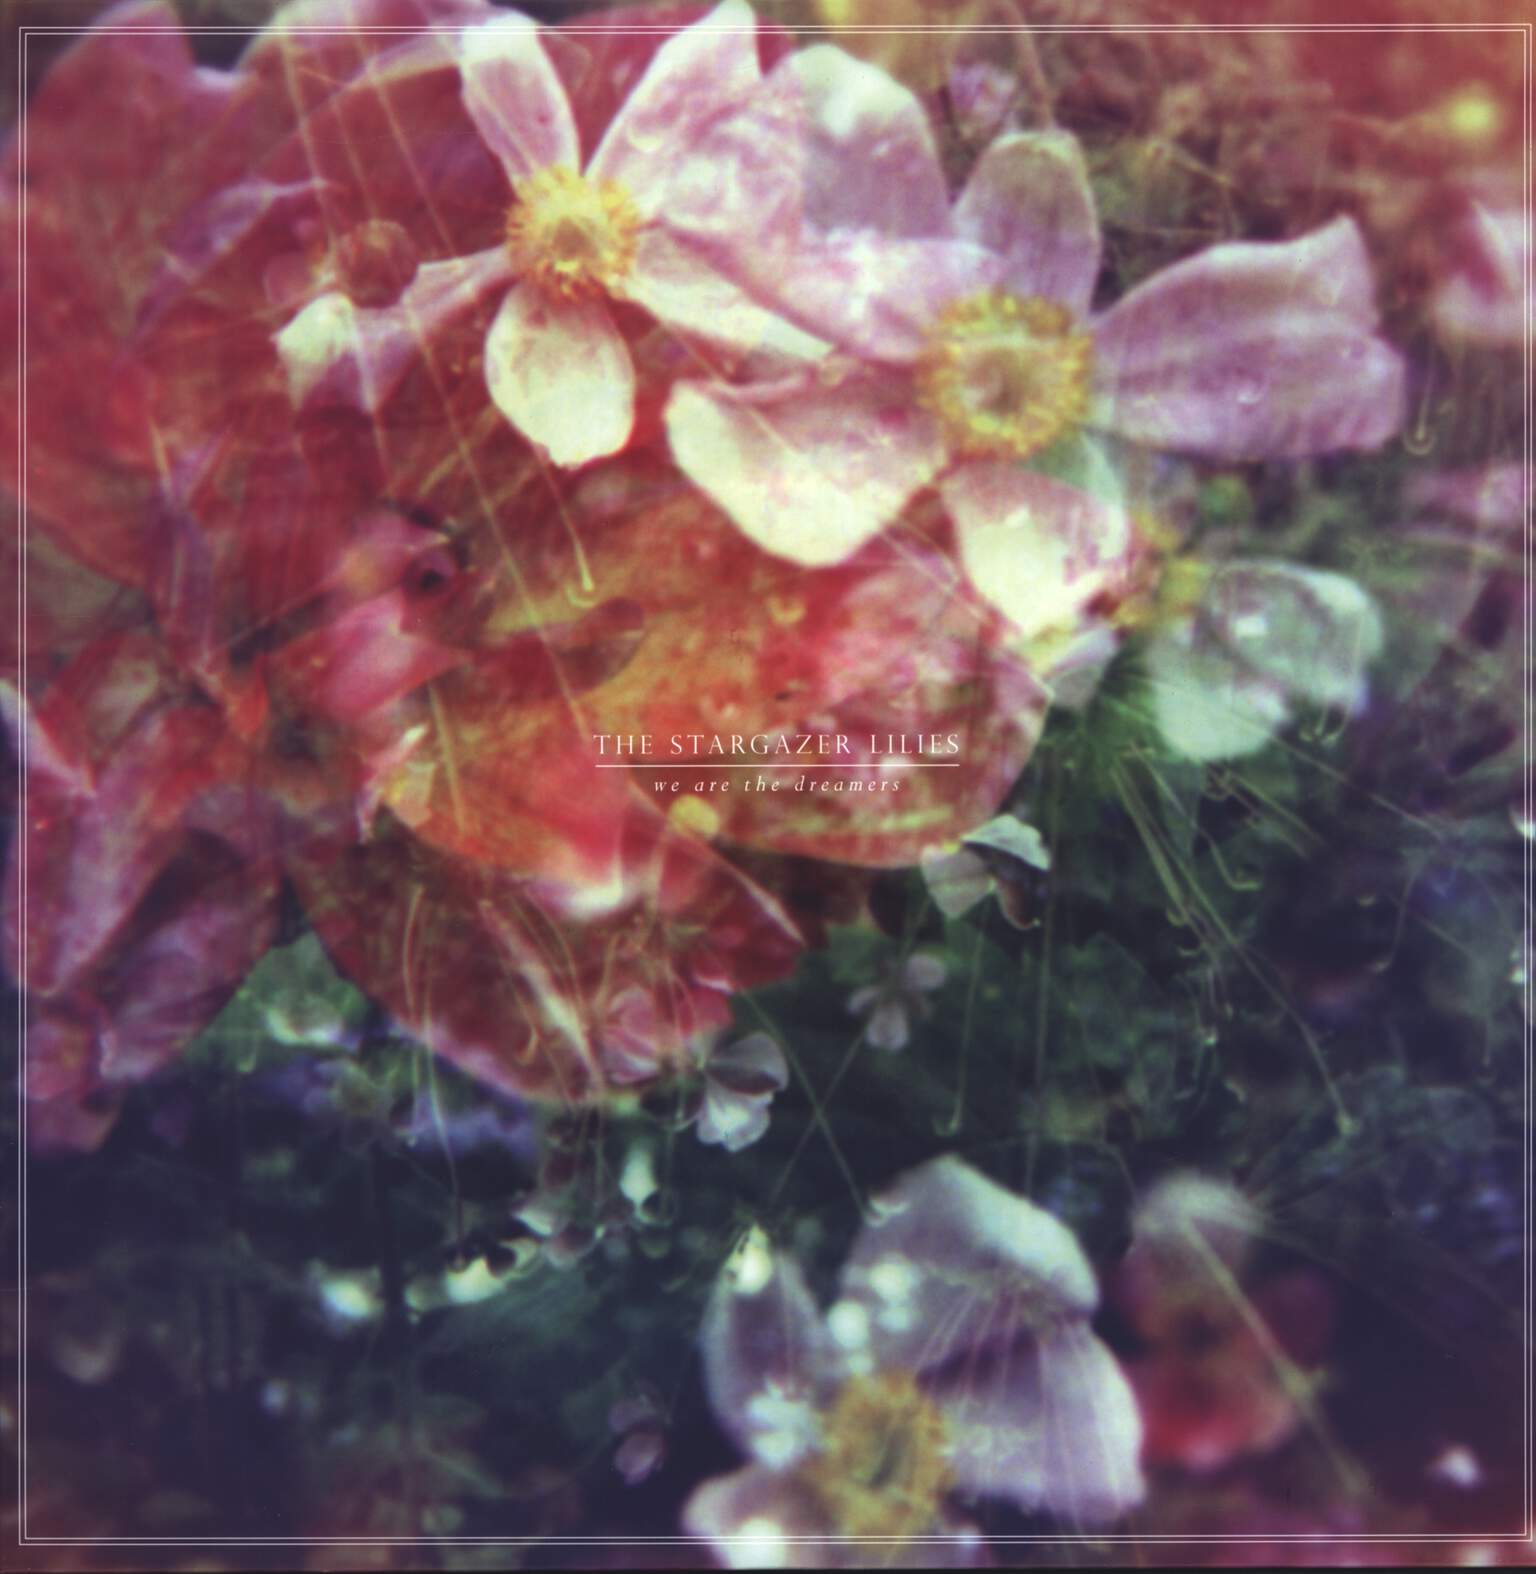 The Stargazer Lilies: We Are The Dreamers, LP (Vinyl)